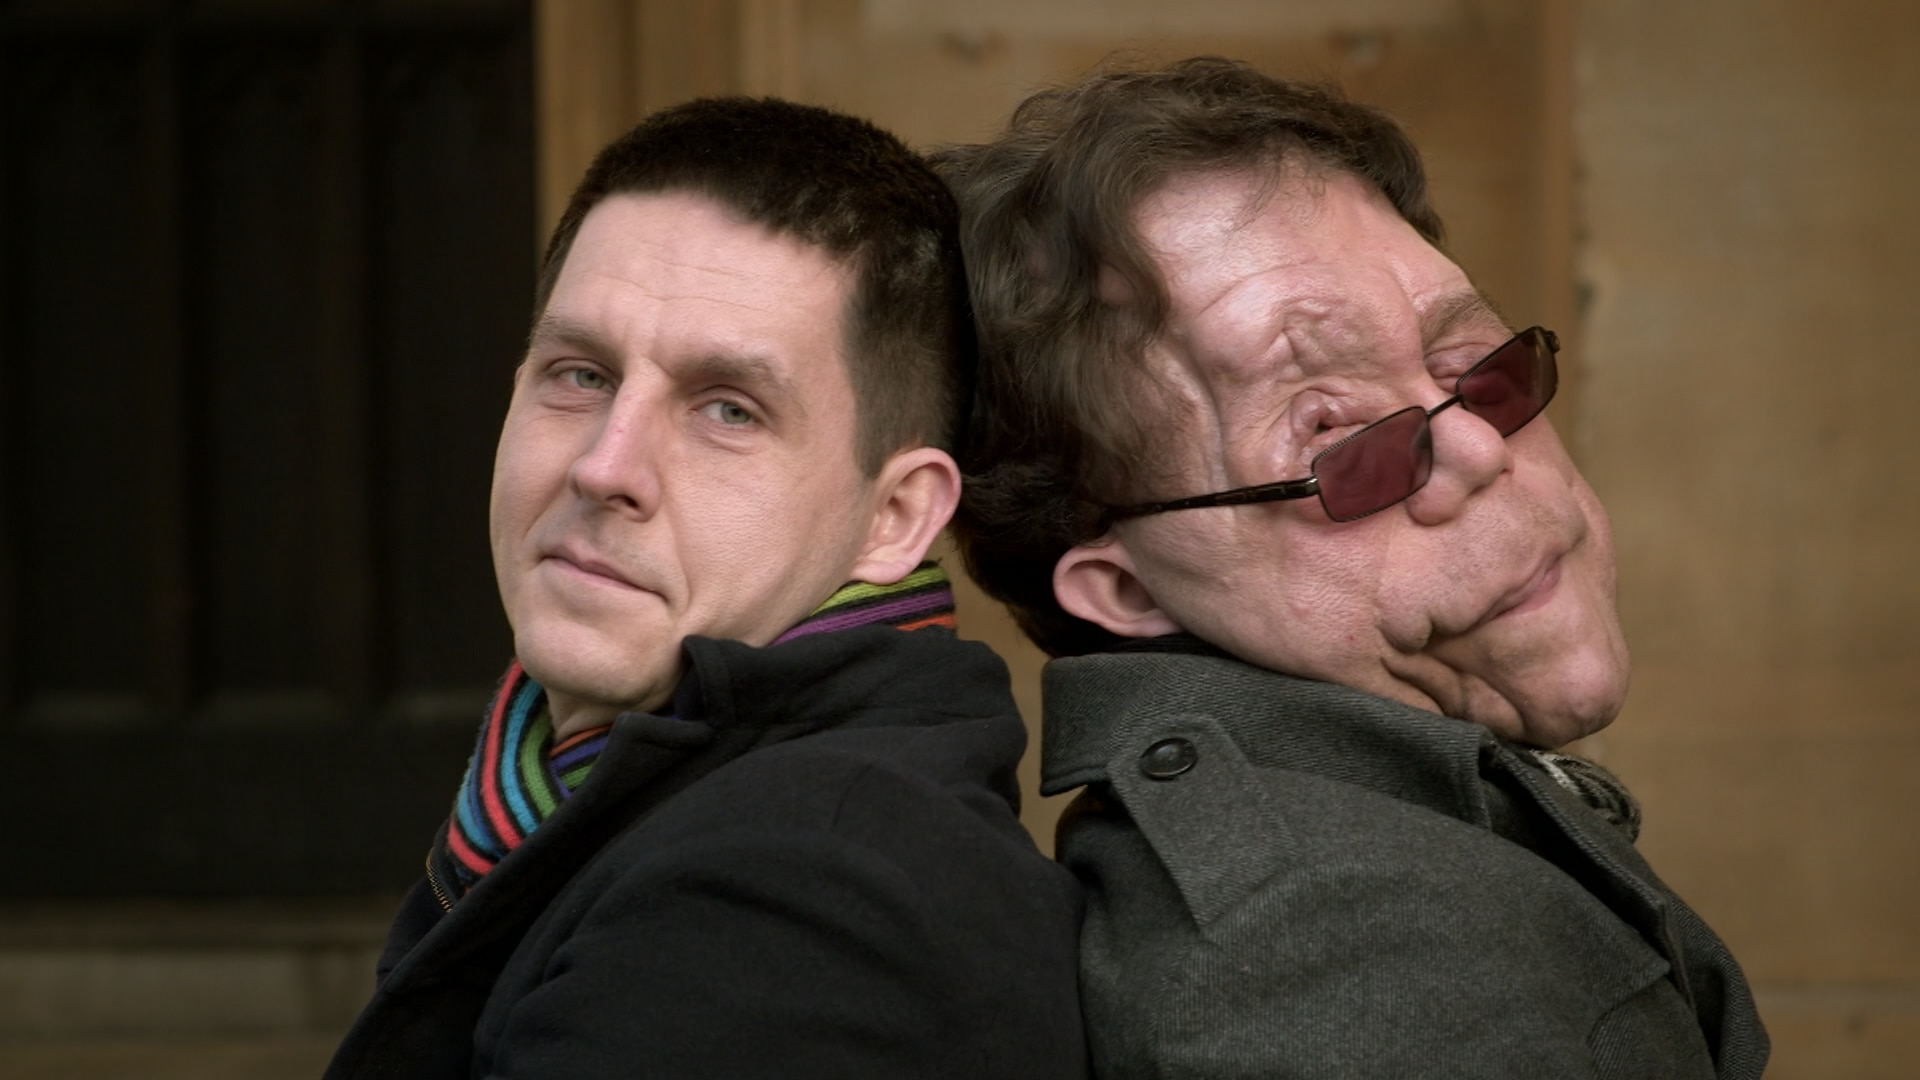 Actor Adam Pearson stands back to back with his brother Neil